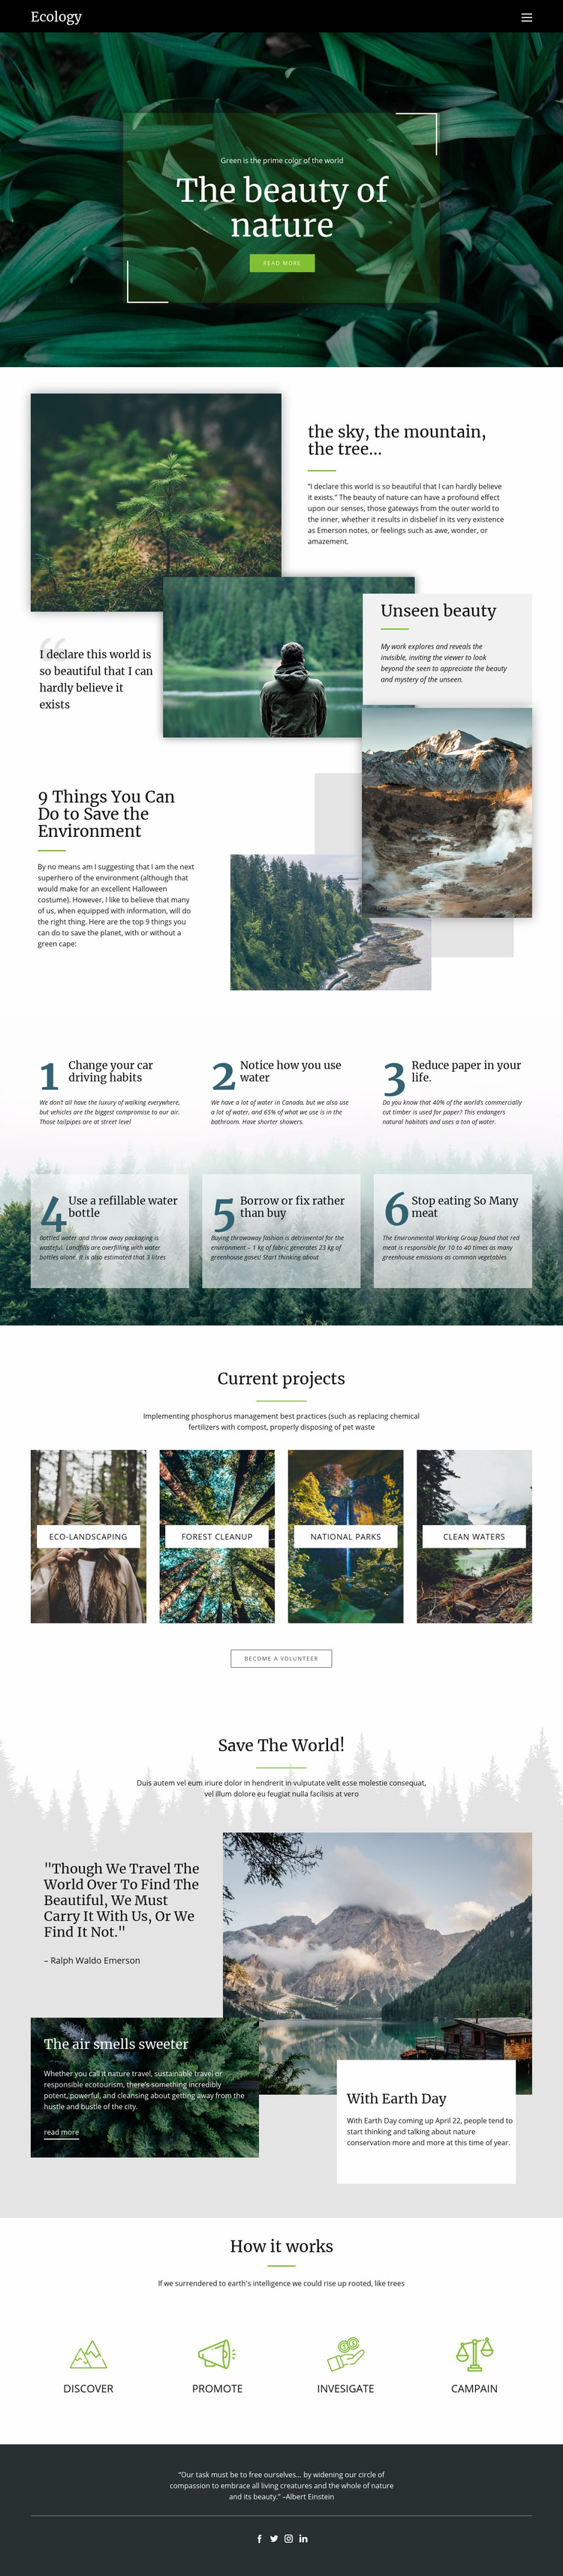 Skies and beauty of nature Web Page Design